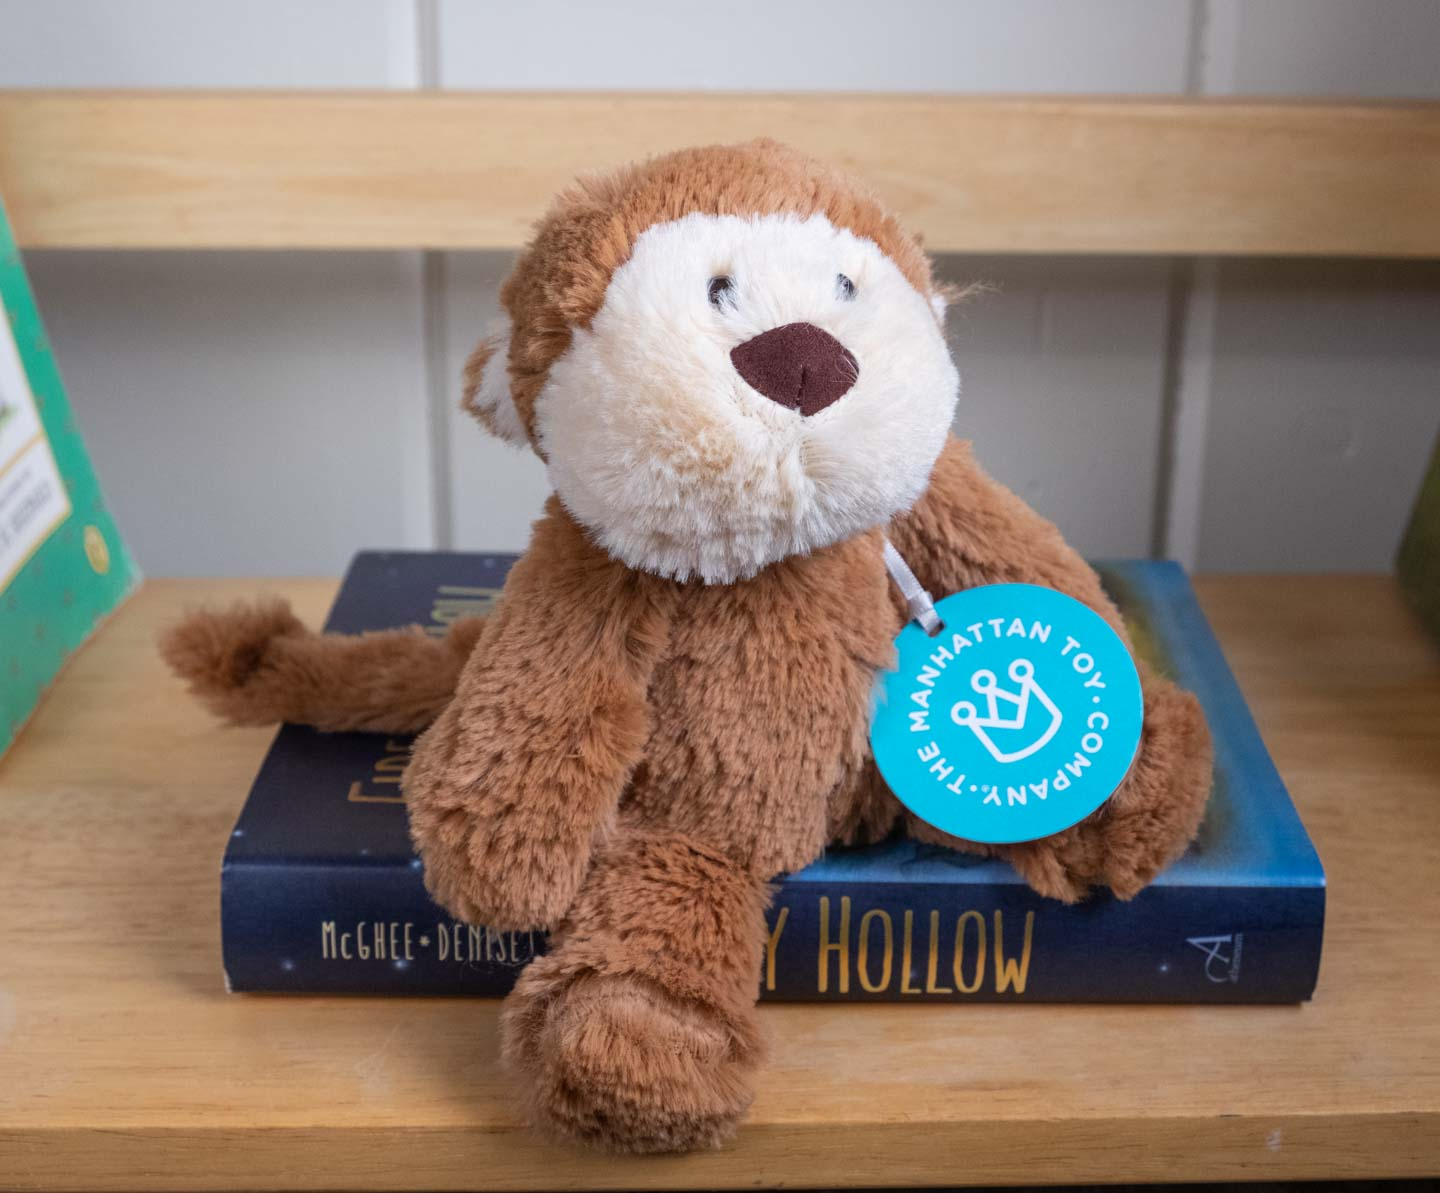 Small brown plush monkey sitting on a book